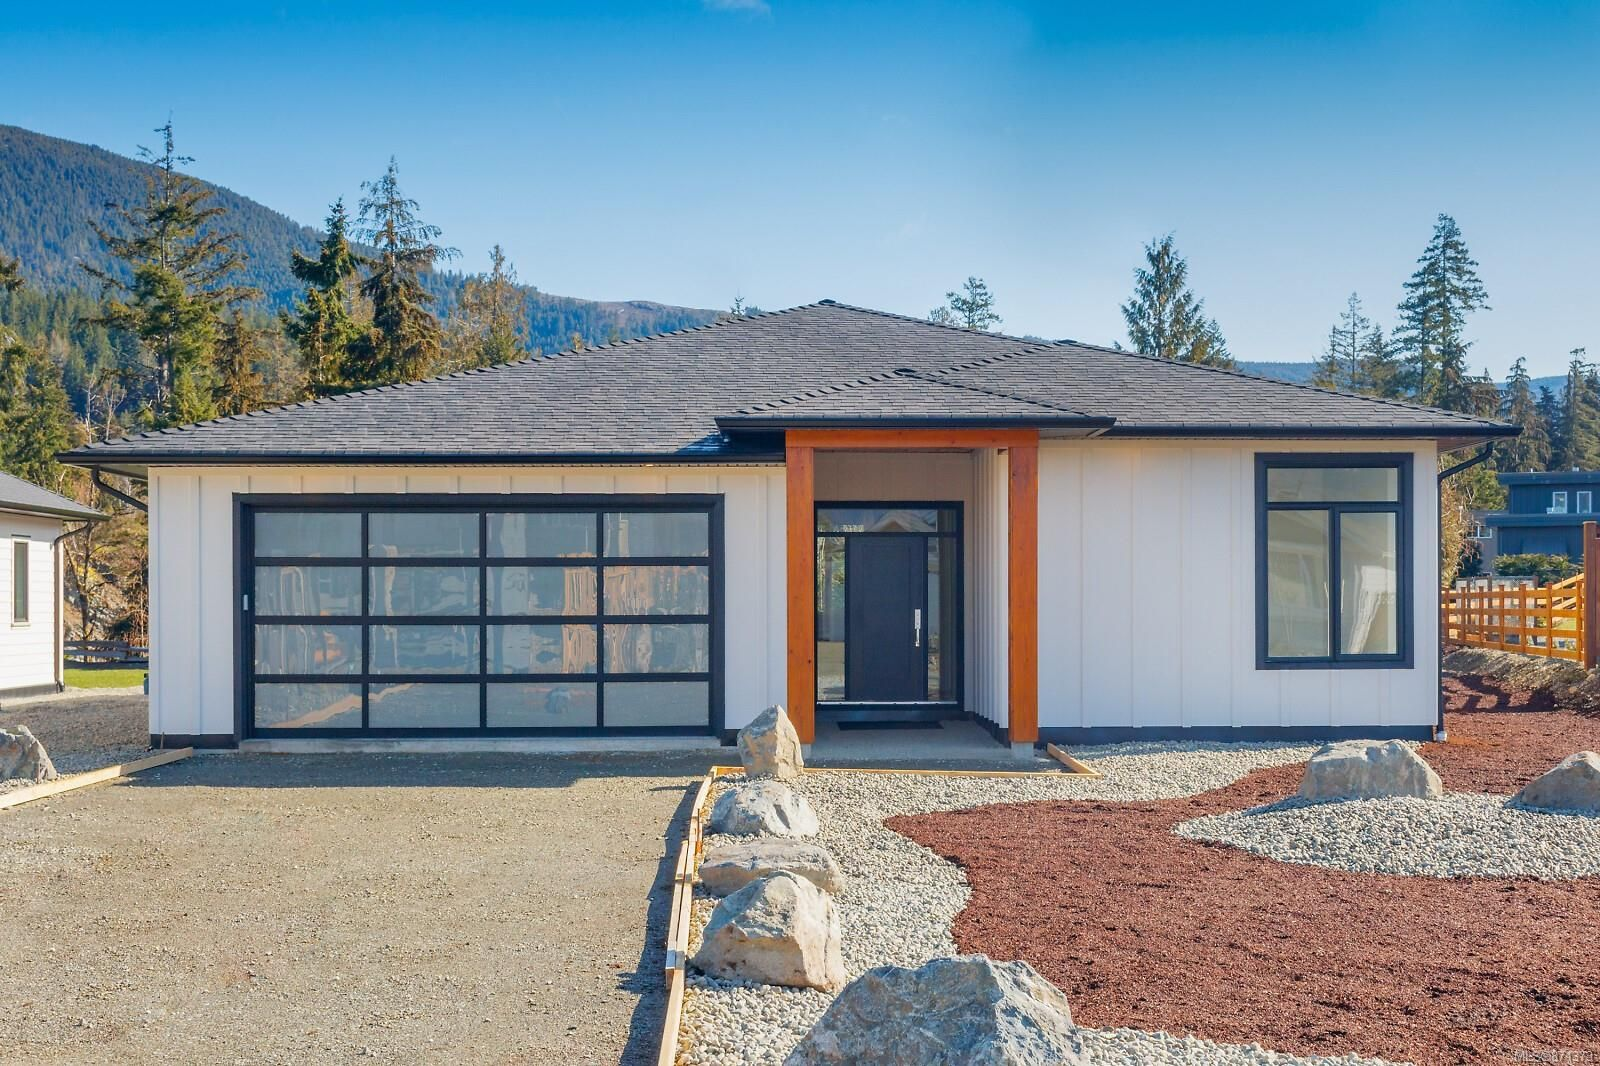 Main Photo: 7264 Lakefront Dr in : Du Lake Cowichan House for sale (Duncan)  : MLS®# 871373